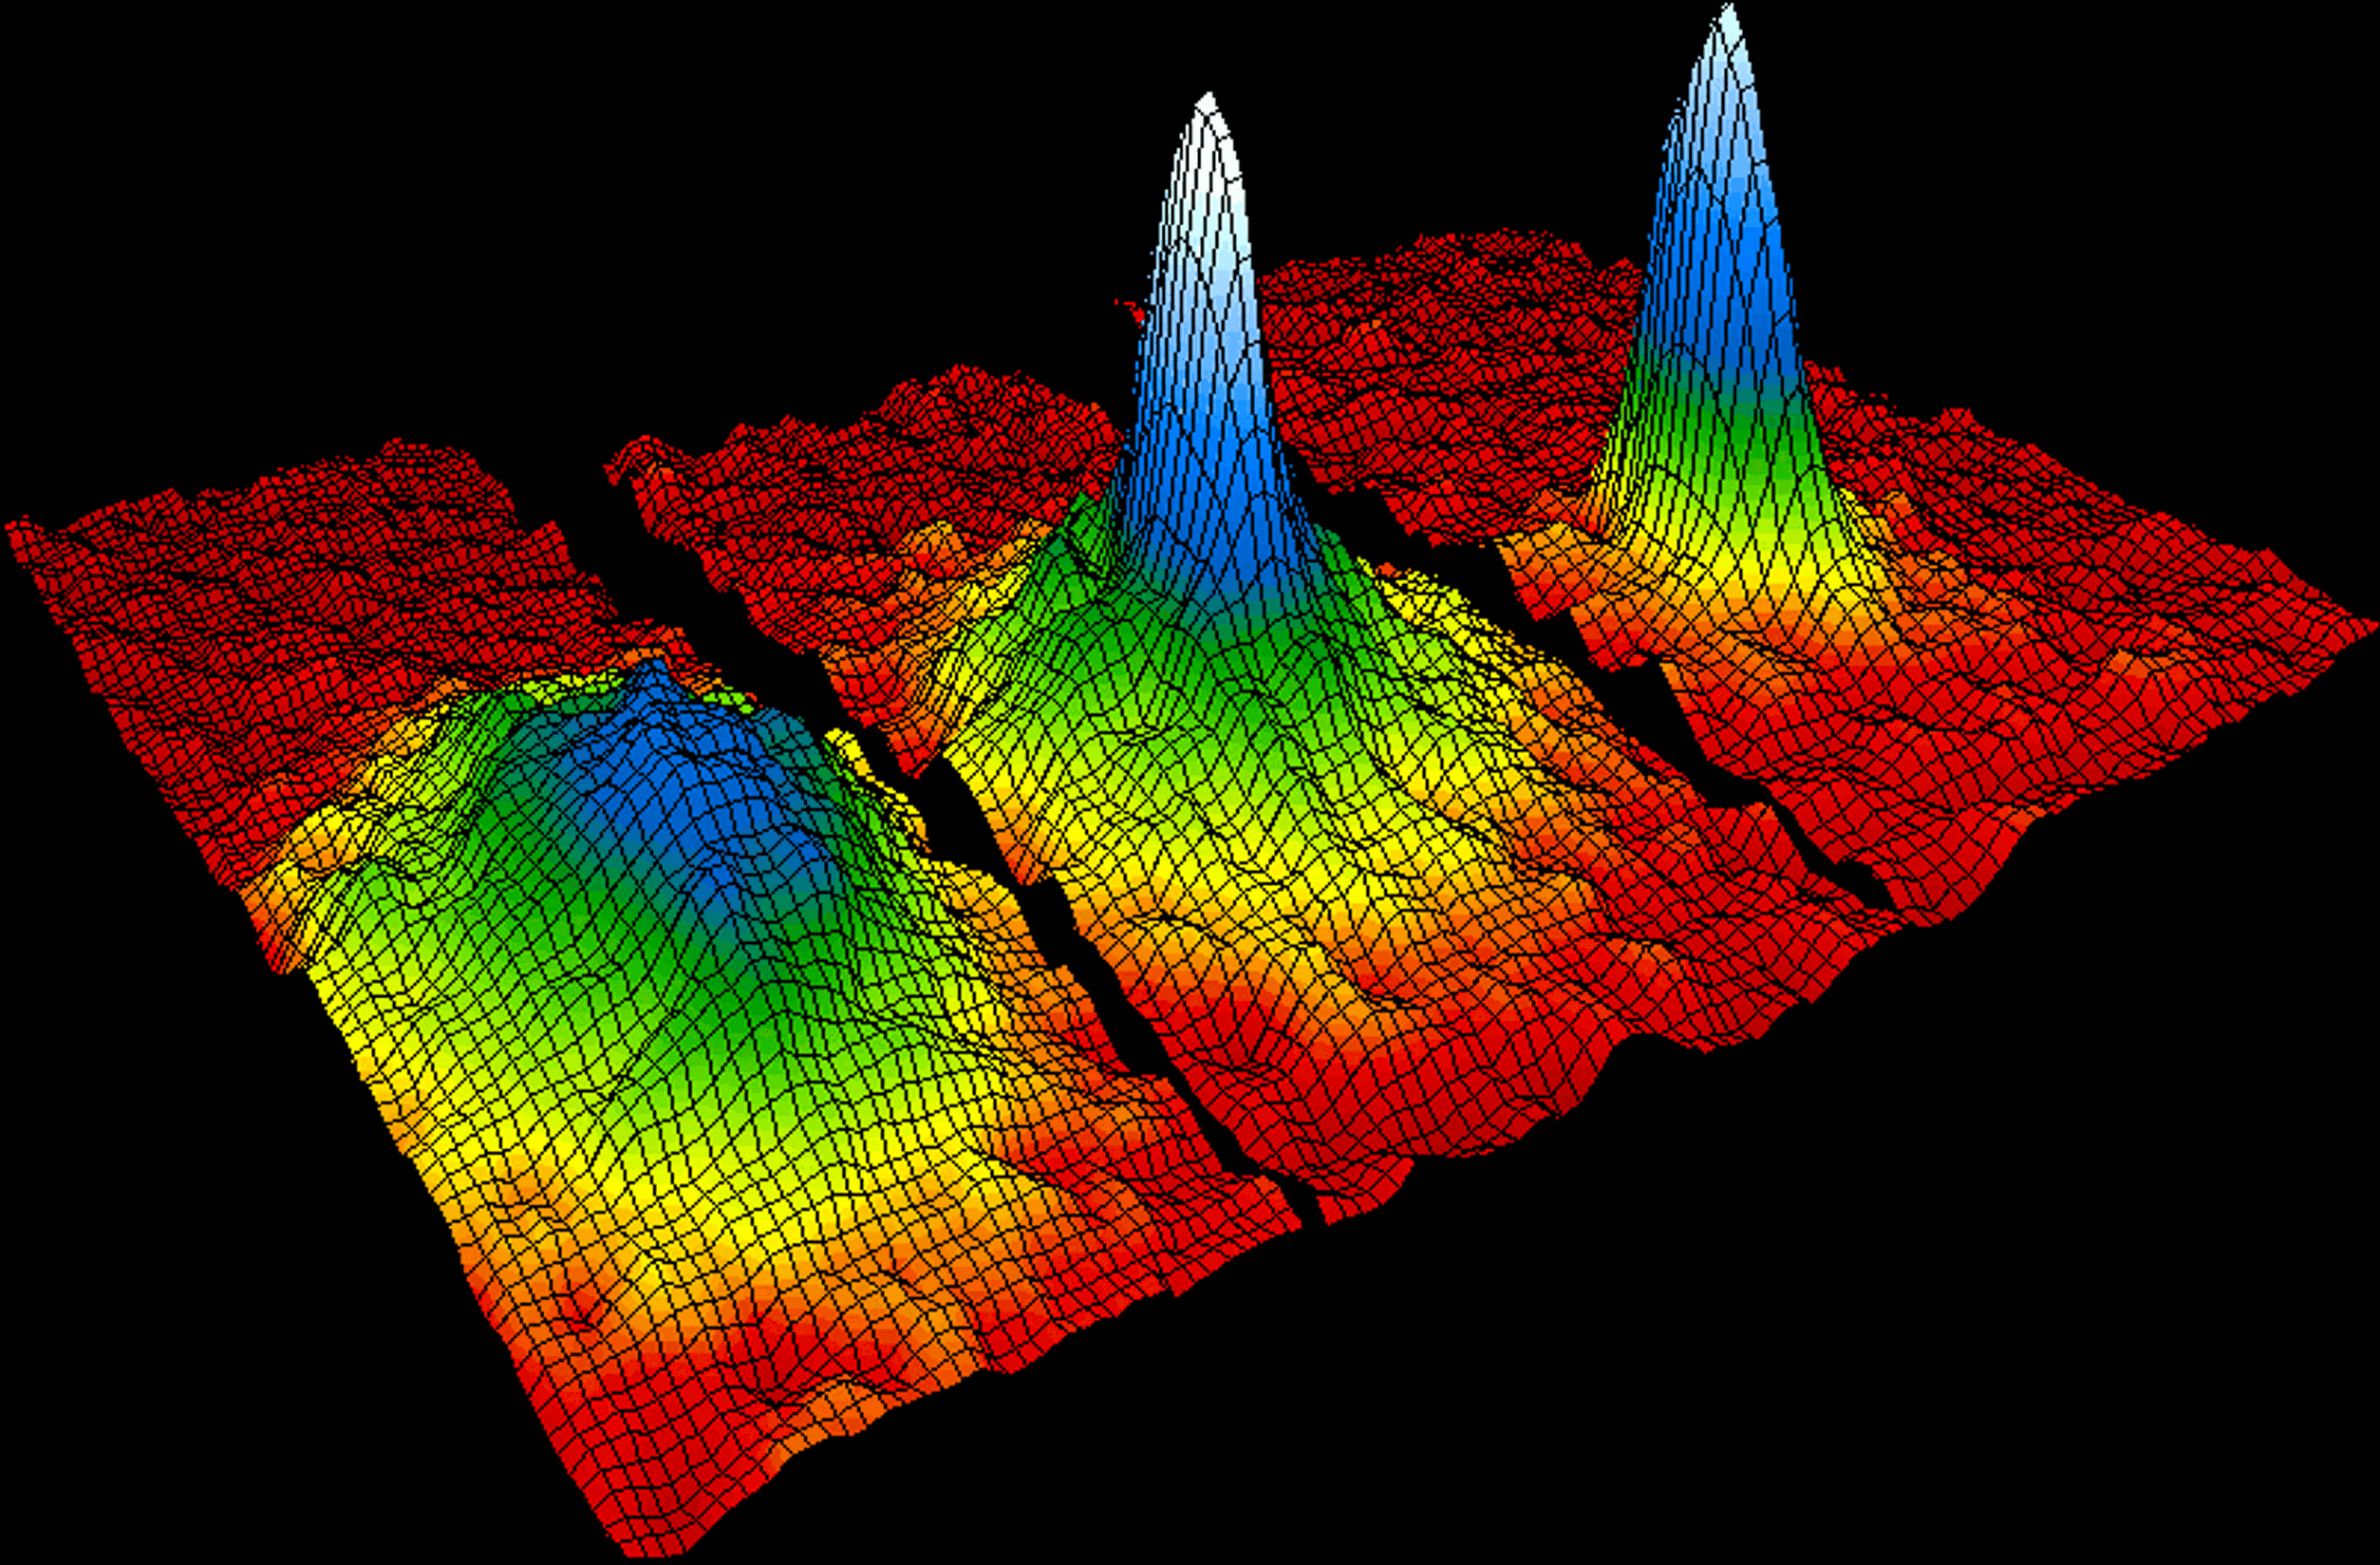 On July 14, 1995, the journal Science published Cornell's and Wieman's results alongside this now-iconic image. It shows a velocity-distribution plot of the cloud of rubidium atoms, with blue-white denoting higher density. Source: NIST